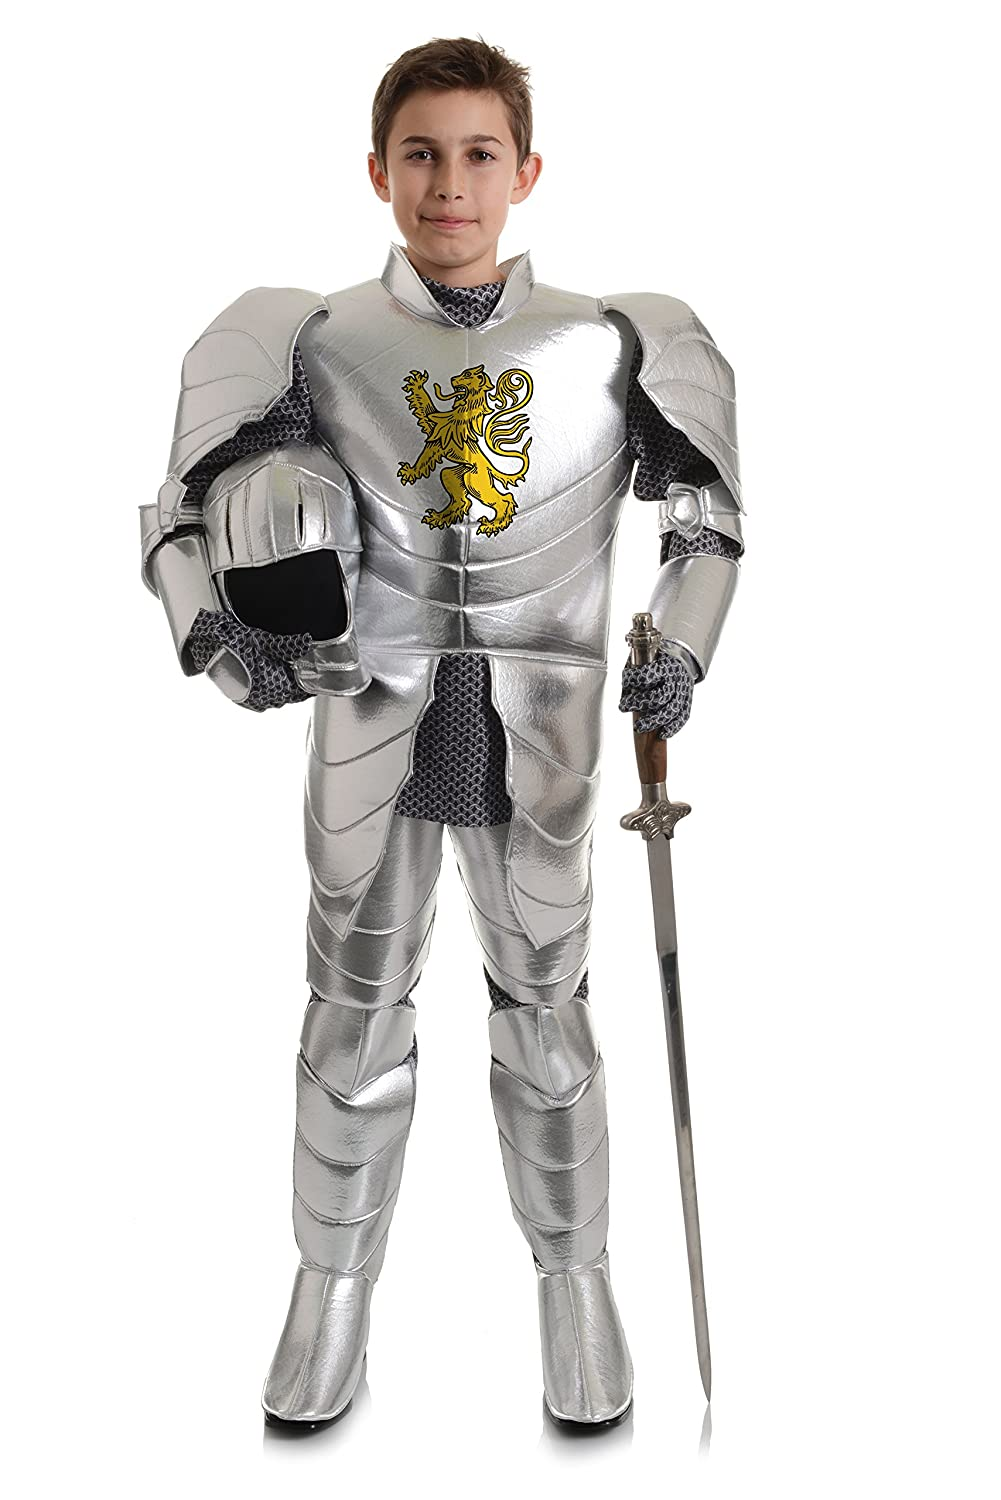 Lion Crested Knight Kids Costume Underwraps 26226-P